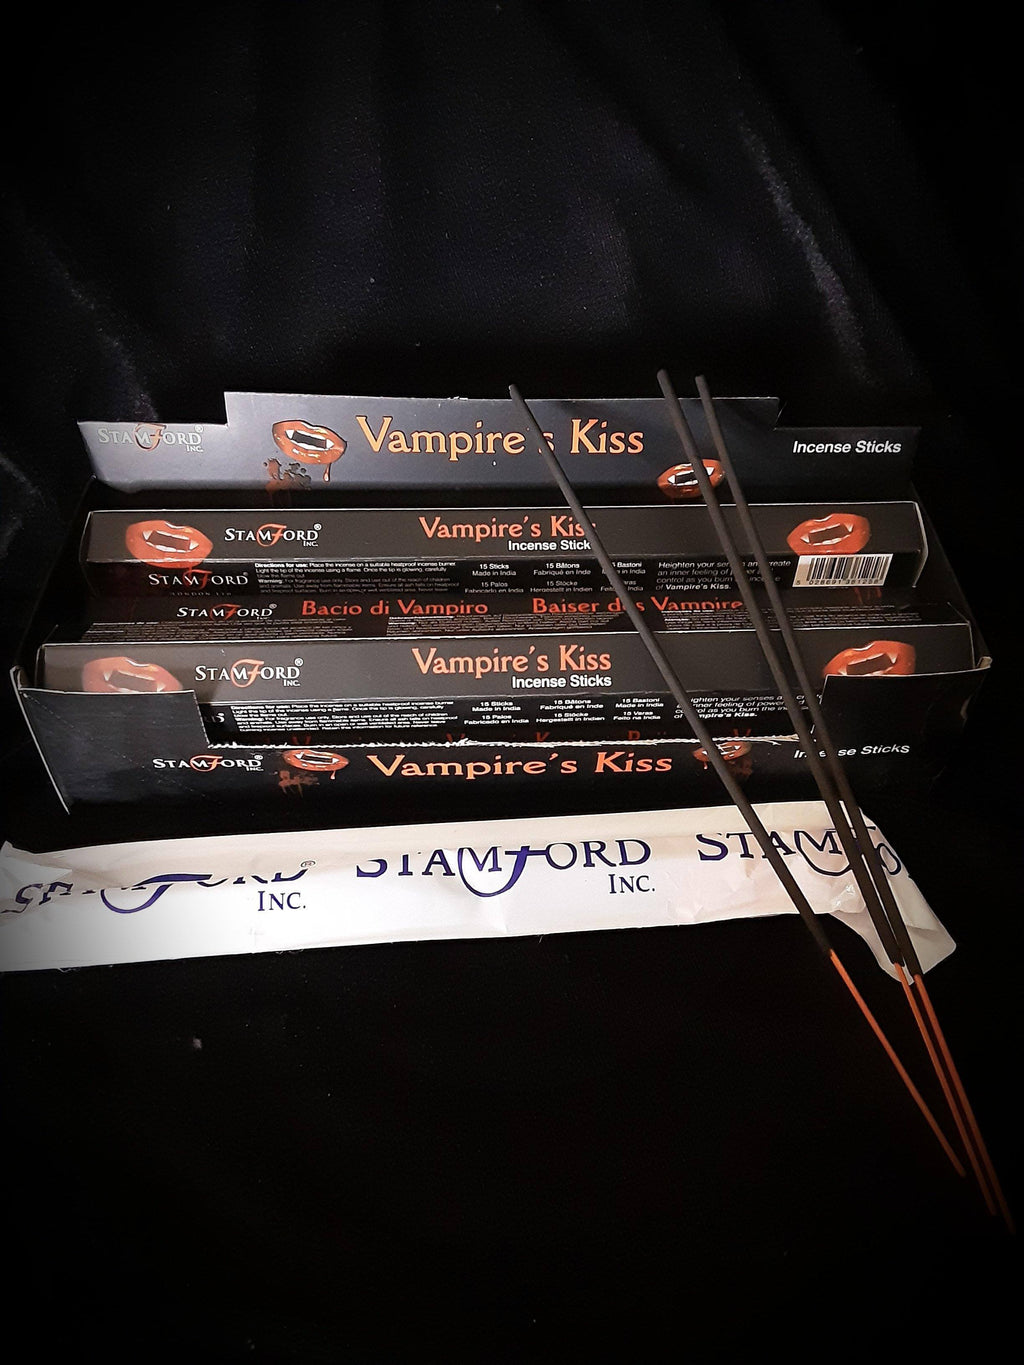 Stamford Vampires Kiss Stick Incense